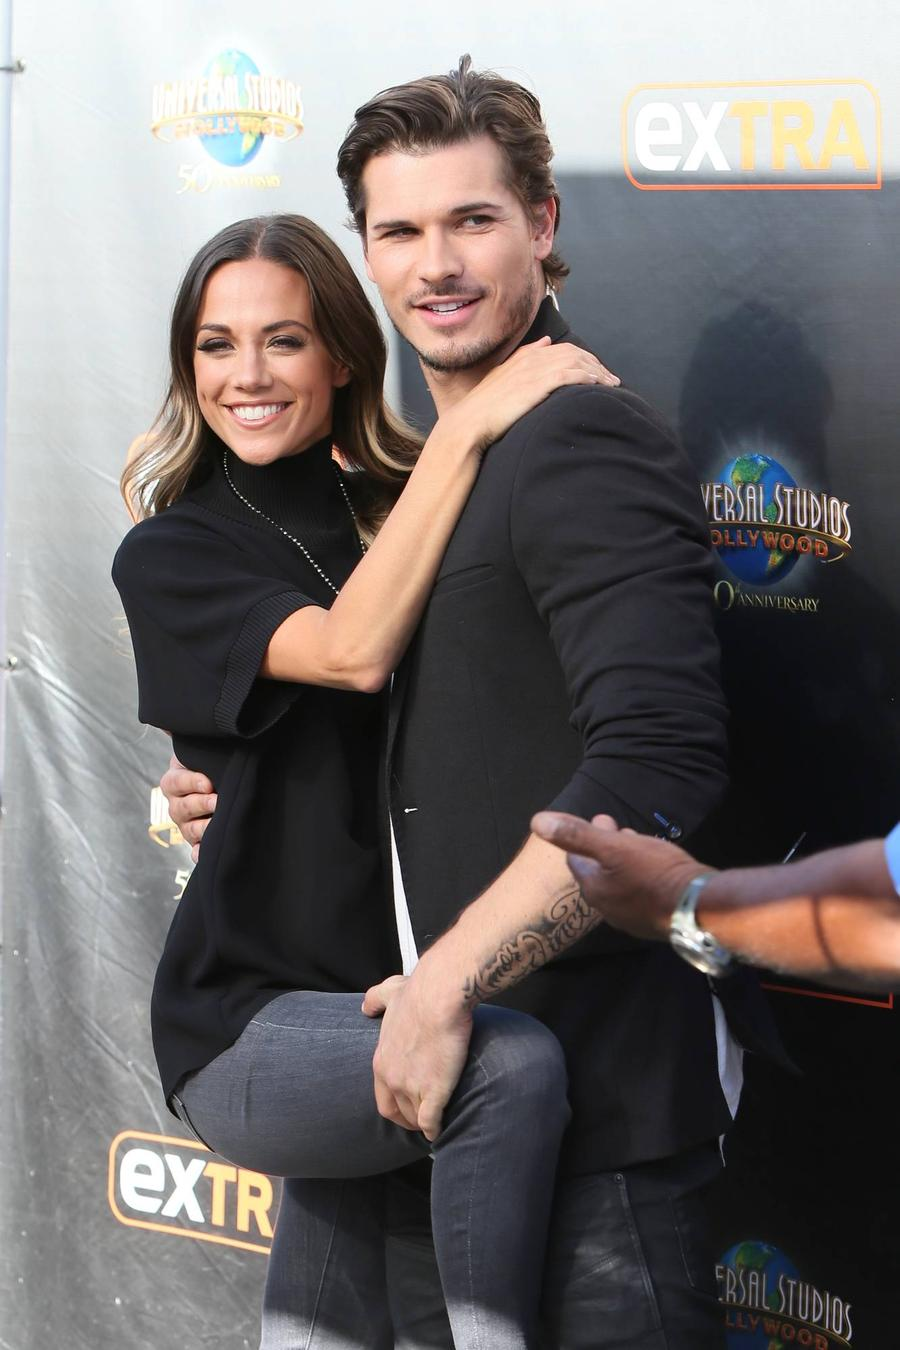 Jana Kramer's Dancing With The Stars Partner Has The Flu